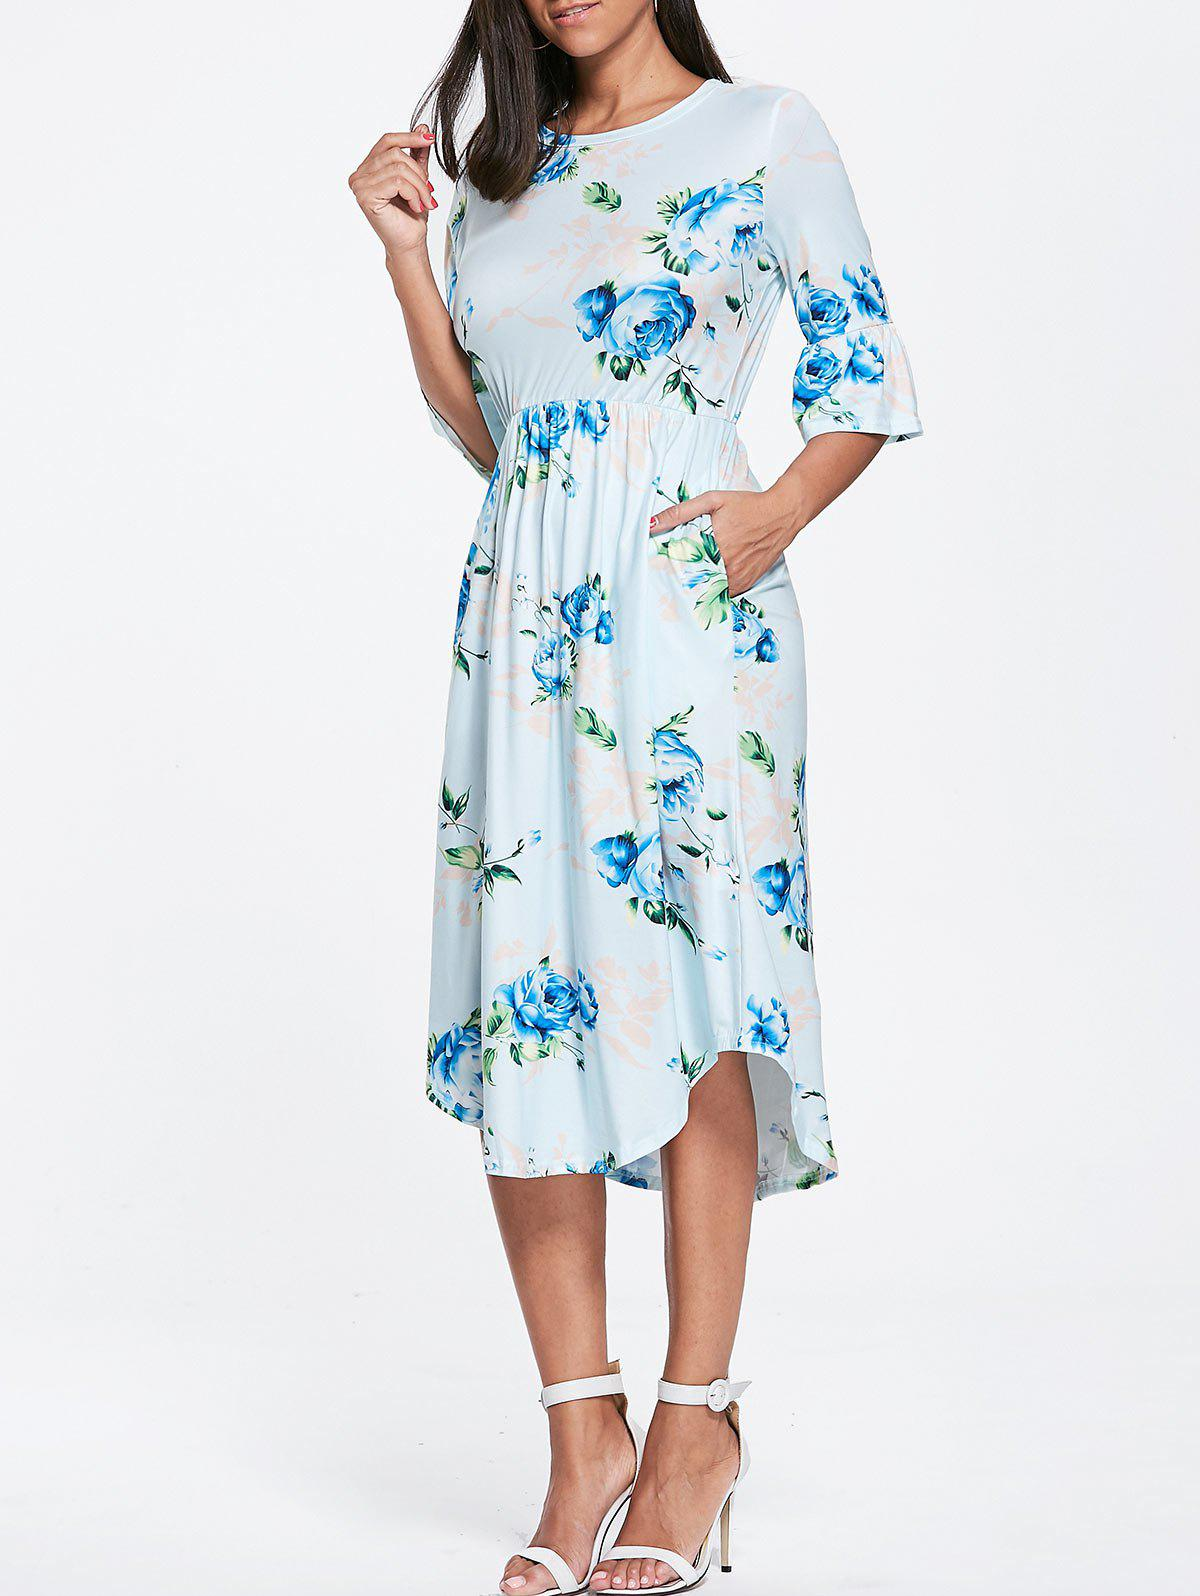 Floral Print Bell Sleeve Pocket Dress - LIGHT BLUE XL